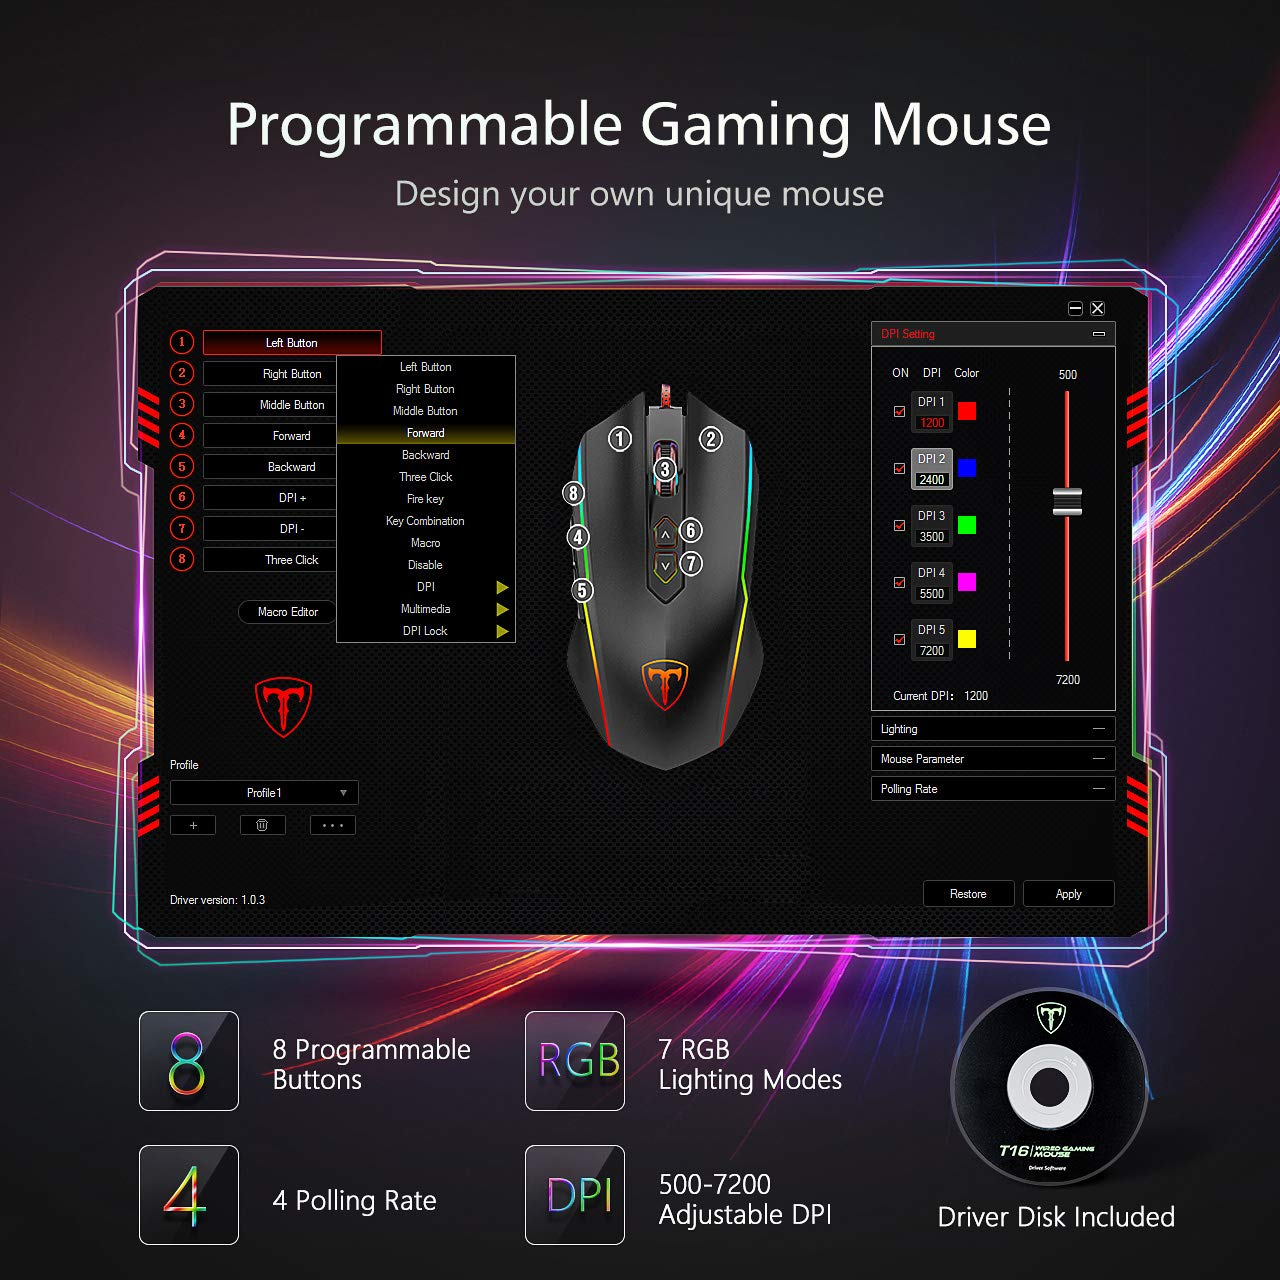 PICTEK Gaming Mouse Wired, 8 Programmable Buttons, Chroma RGB Backlit, 7200 DPI Adjustable, Comfortable Grip Ergonomic Optical PC Computer Gaming Mice with Fire Button, Black (Upgraded Version) by PICTEK (Image #2)